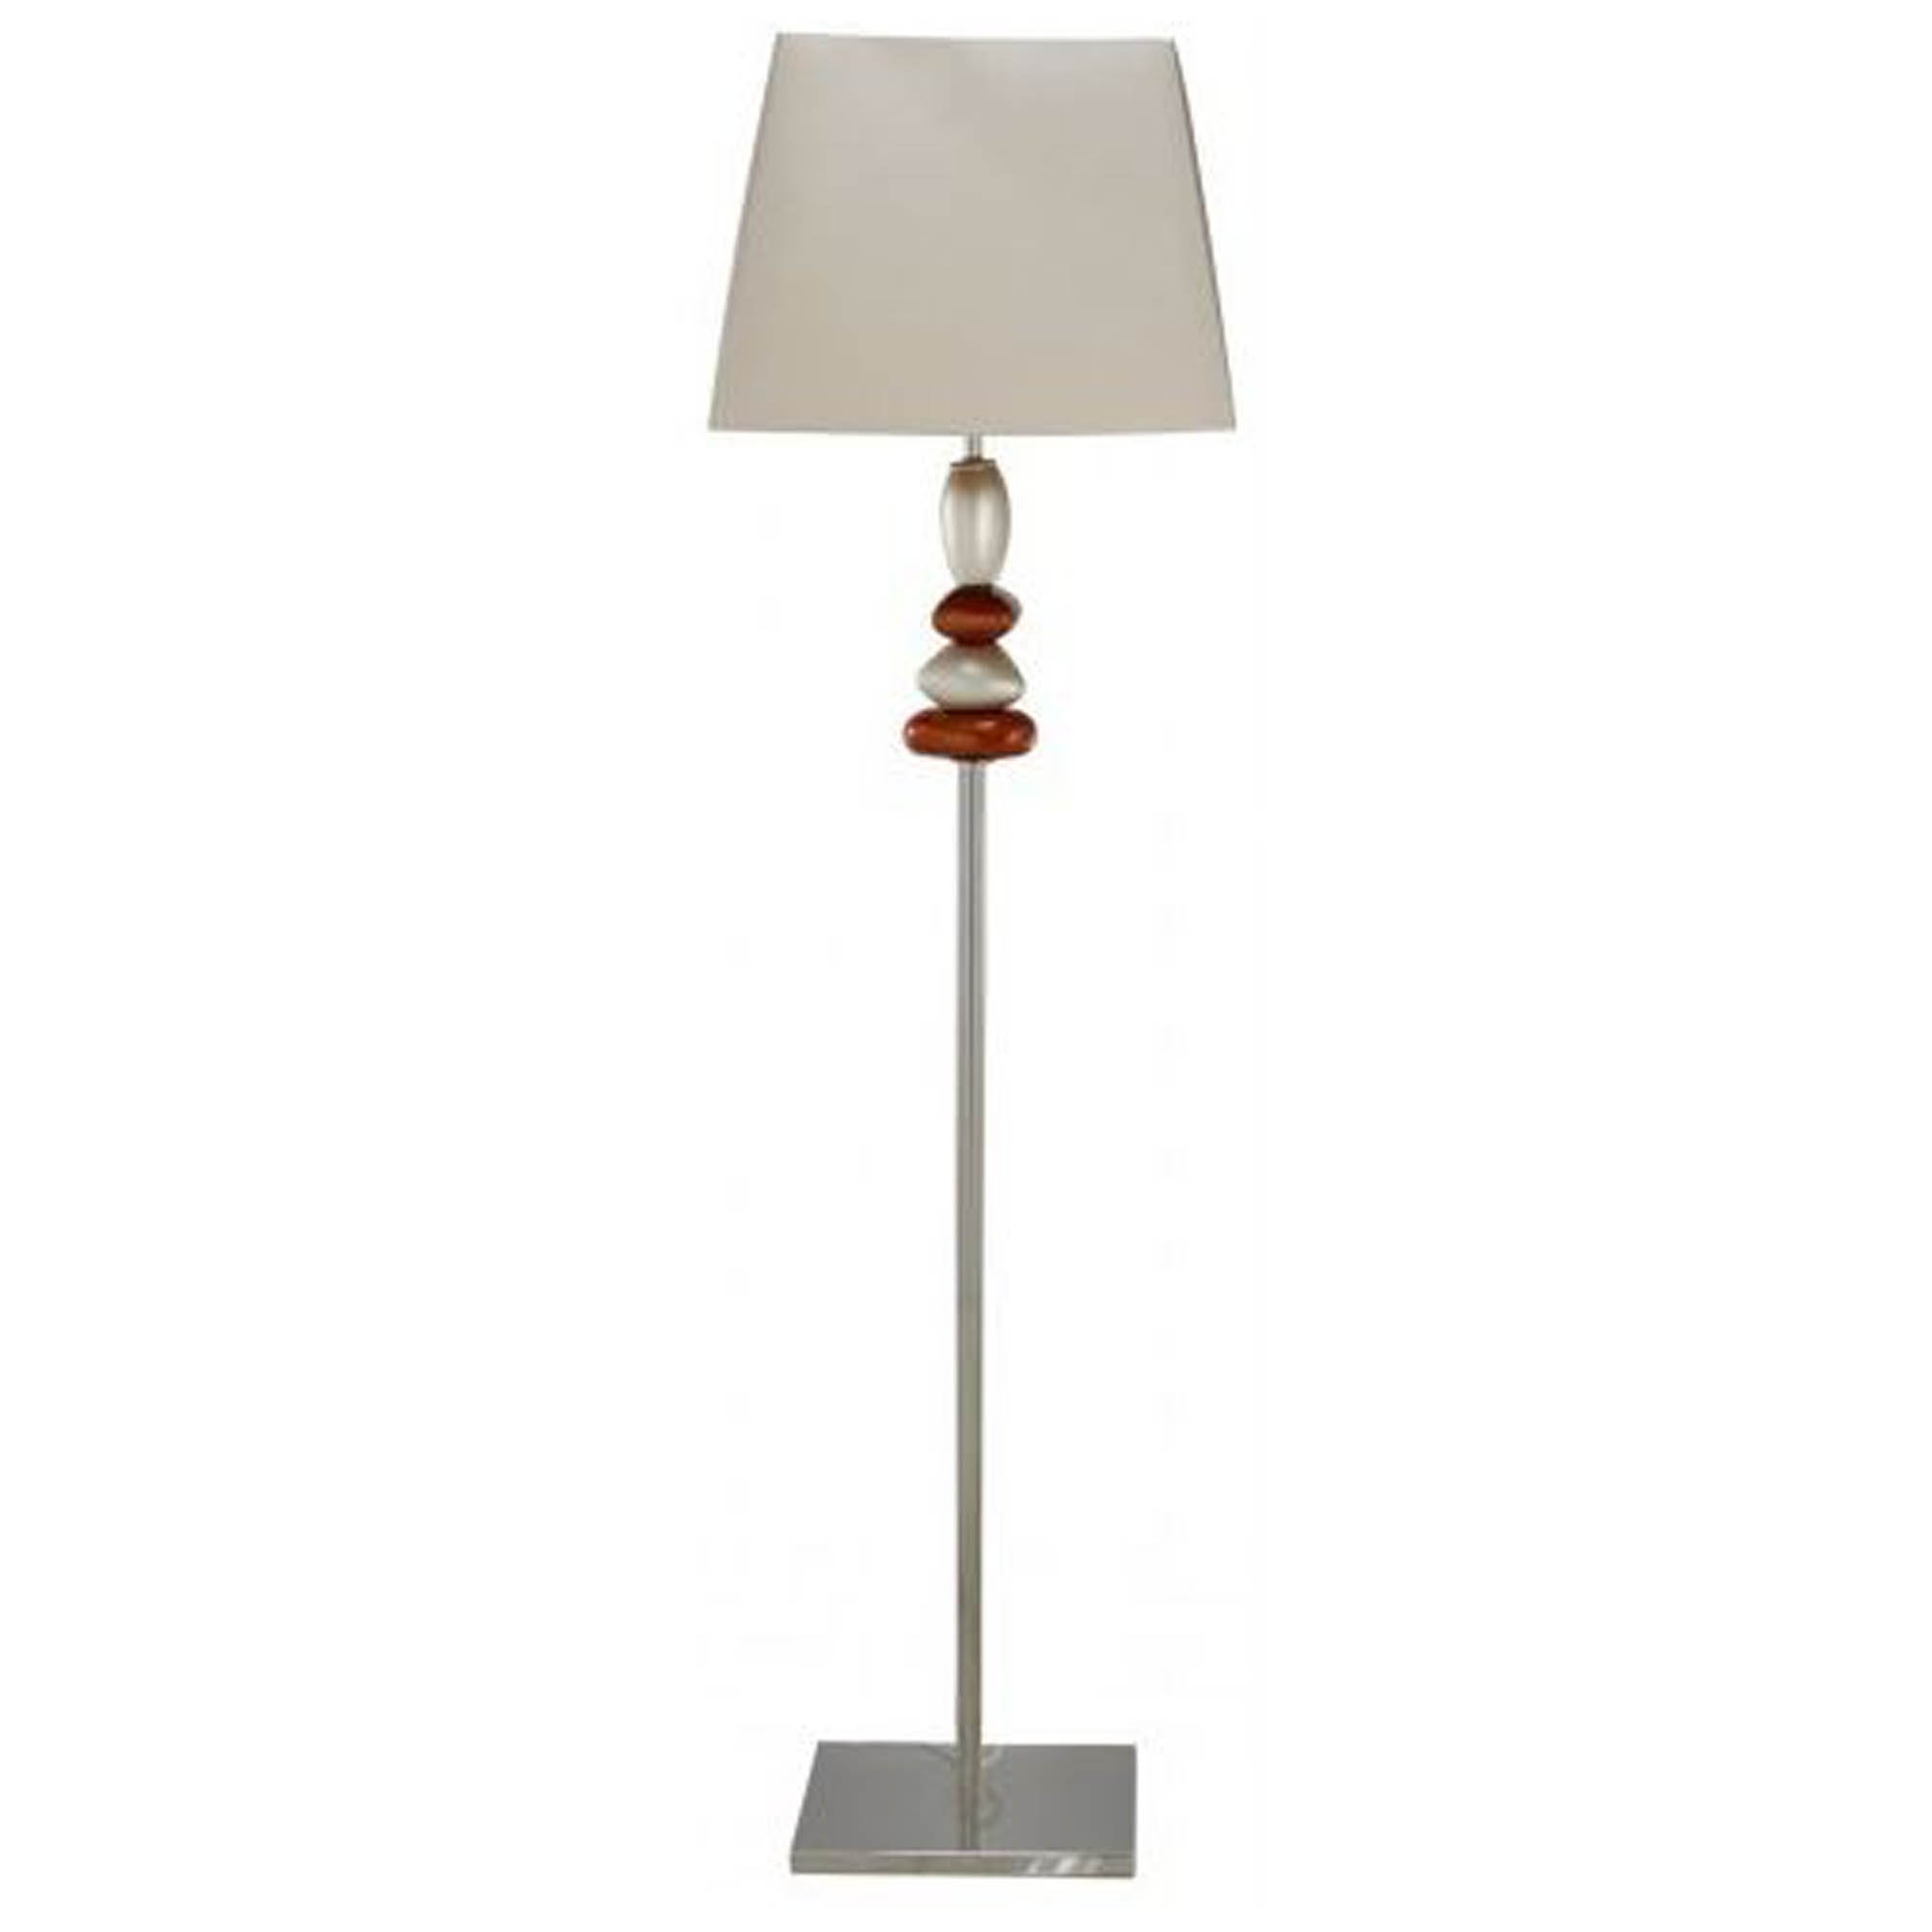 Terracotta table lamp gallery of table lamps red table lamp table perfect terracotta pebble floor lamp with terracotta table lamp aloadofball Images